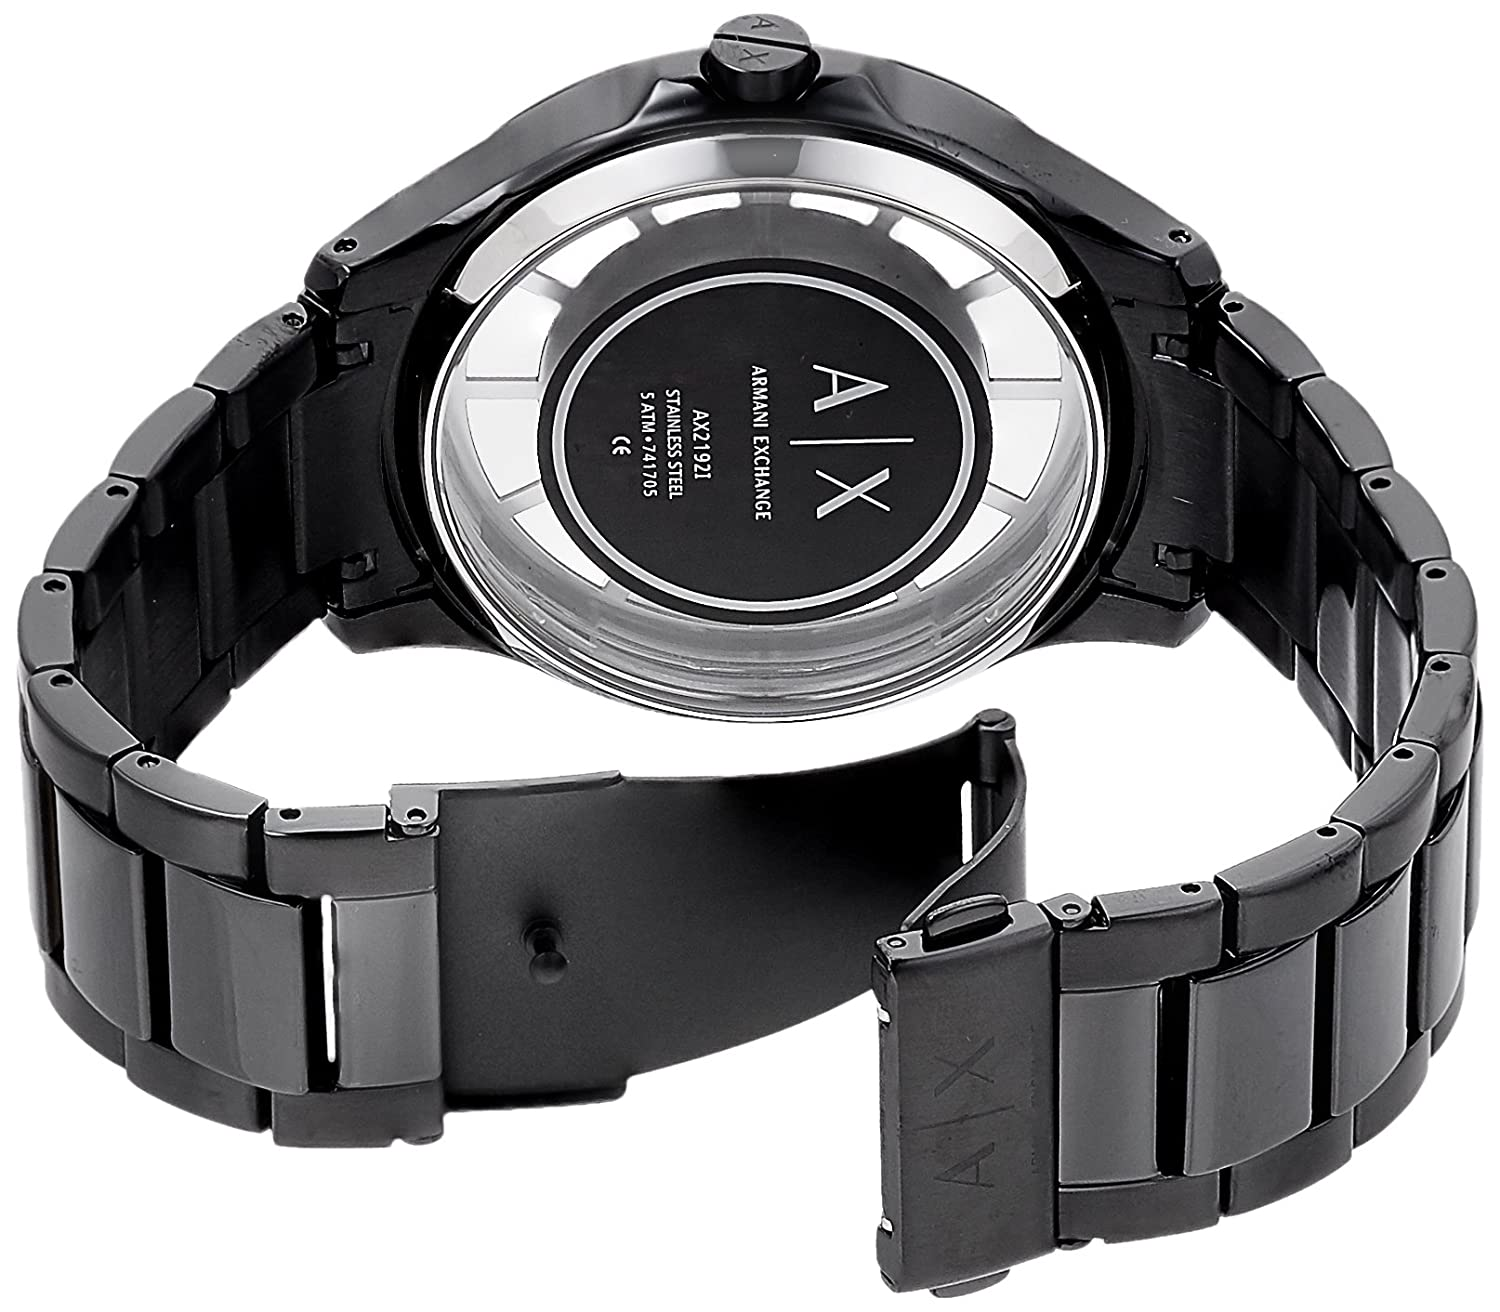 73507fb1628 Buy Armani Exchange Chronograph Black Dial Men s Watch - AX2192I Online at Low  Prices in India - Amazon.in